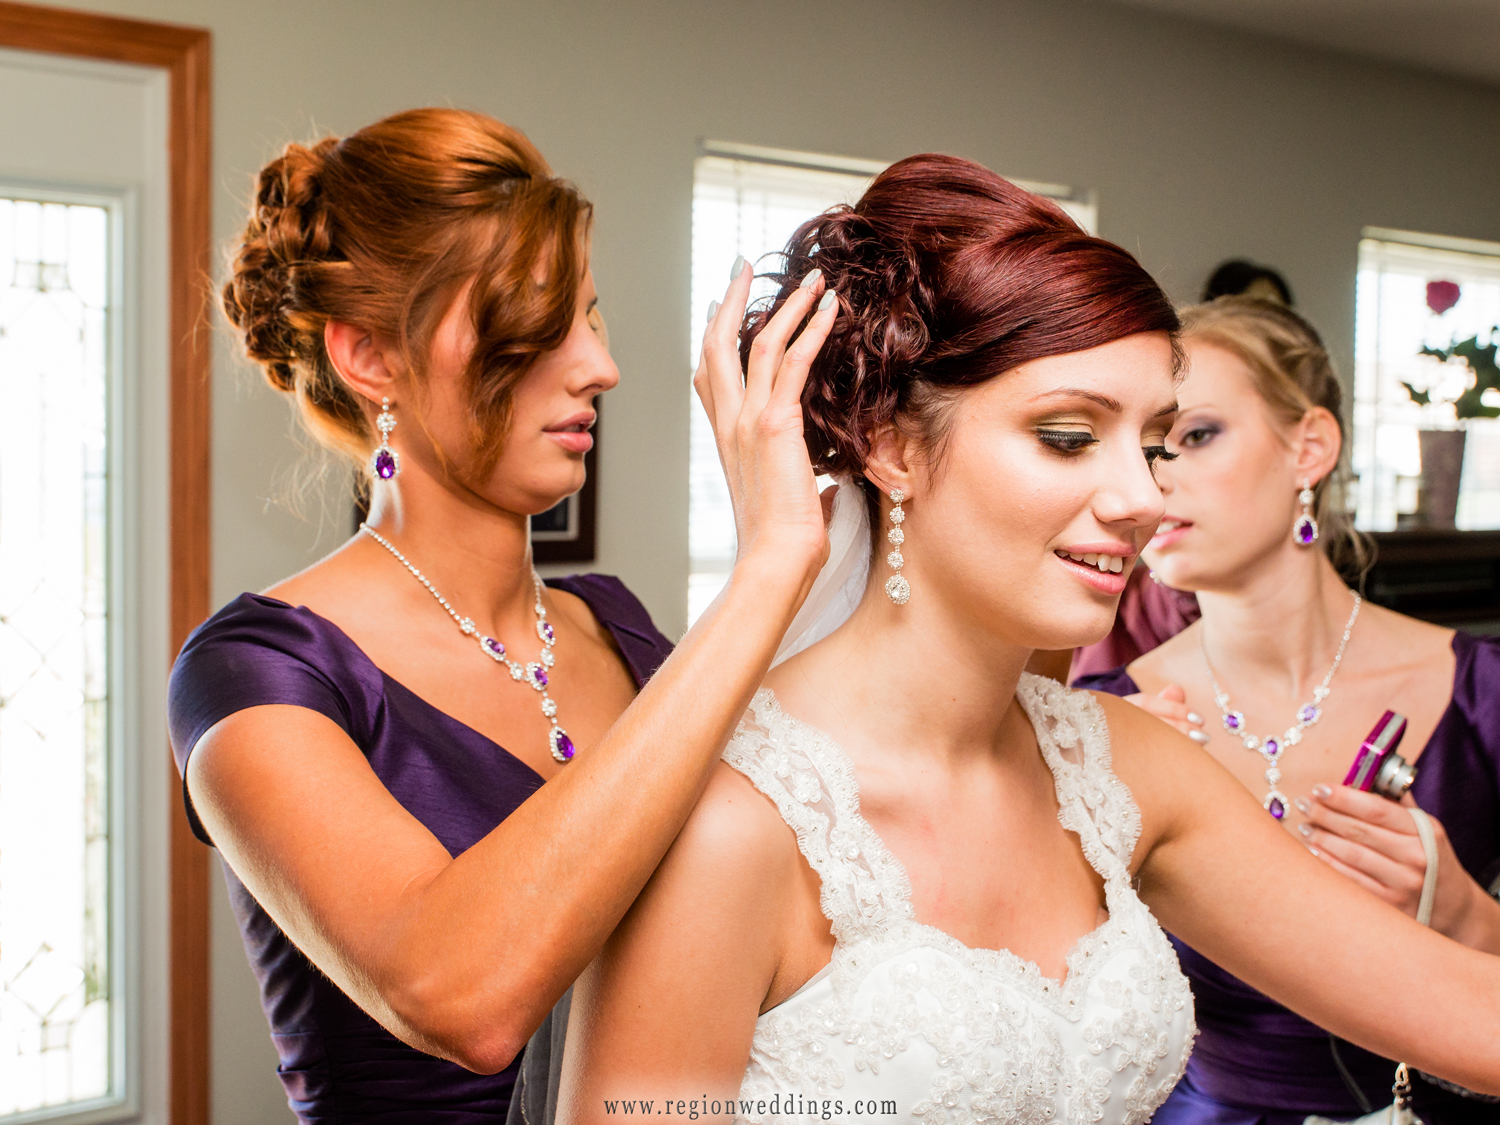 the bridesmaids help secure the bride's veil before her wedding ceremony in Calumet City, Illinois.